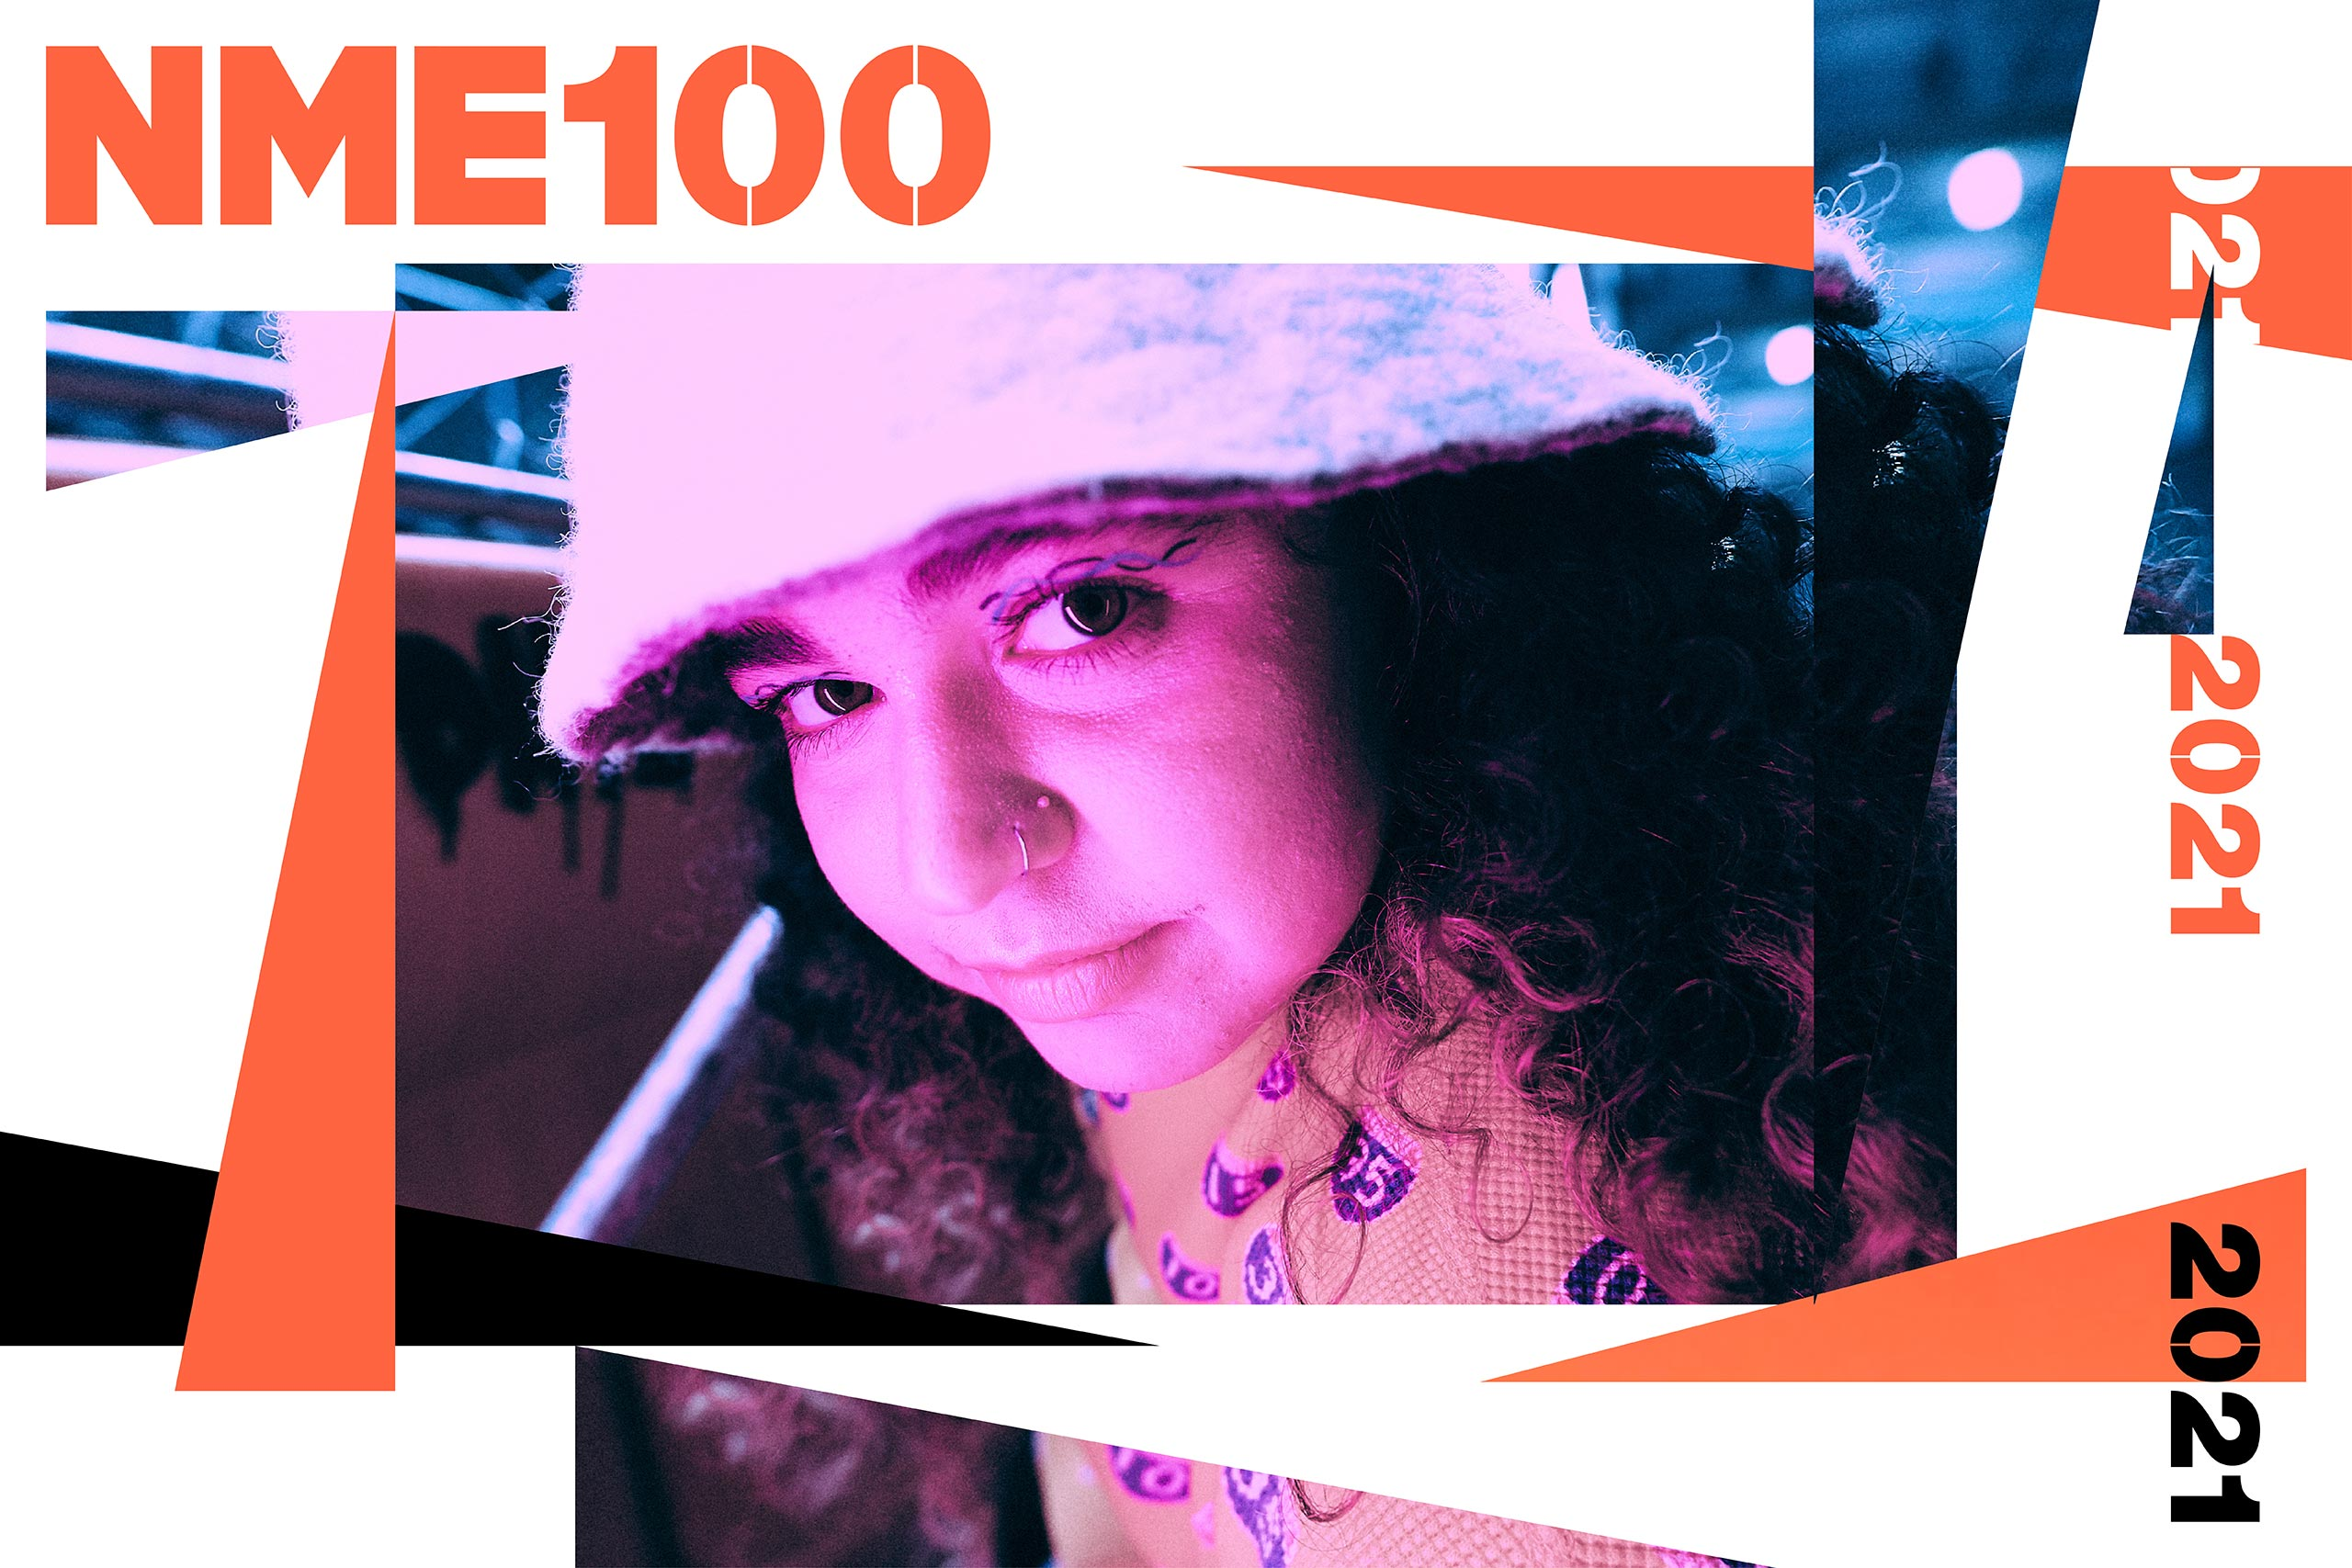 NME 100 remi wolf